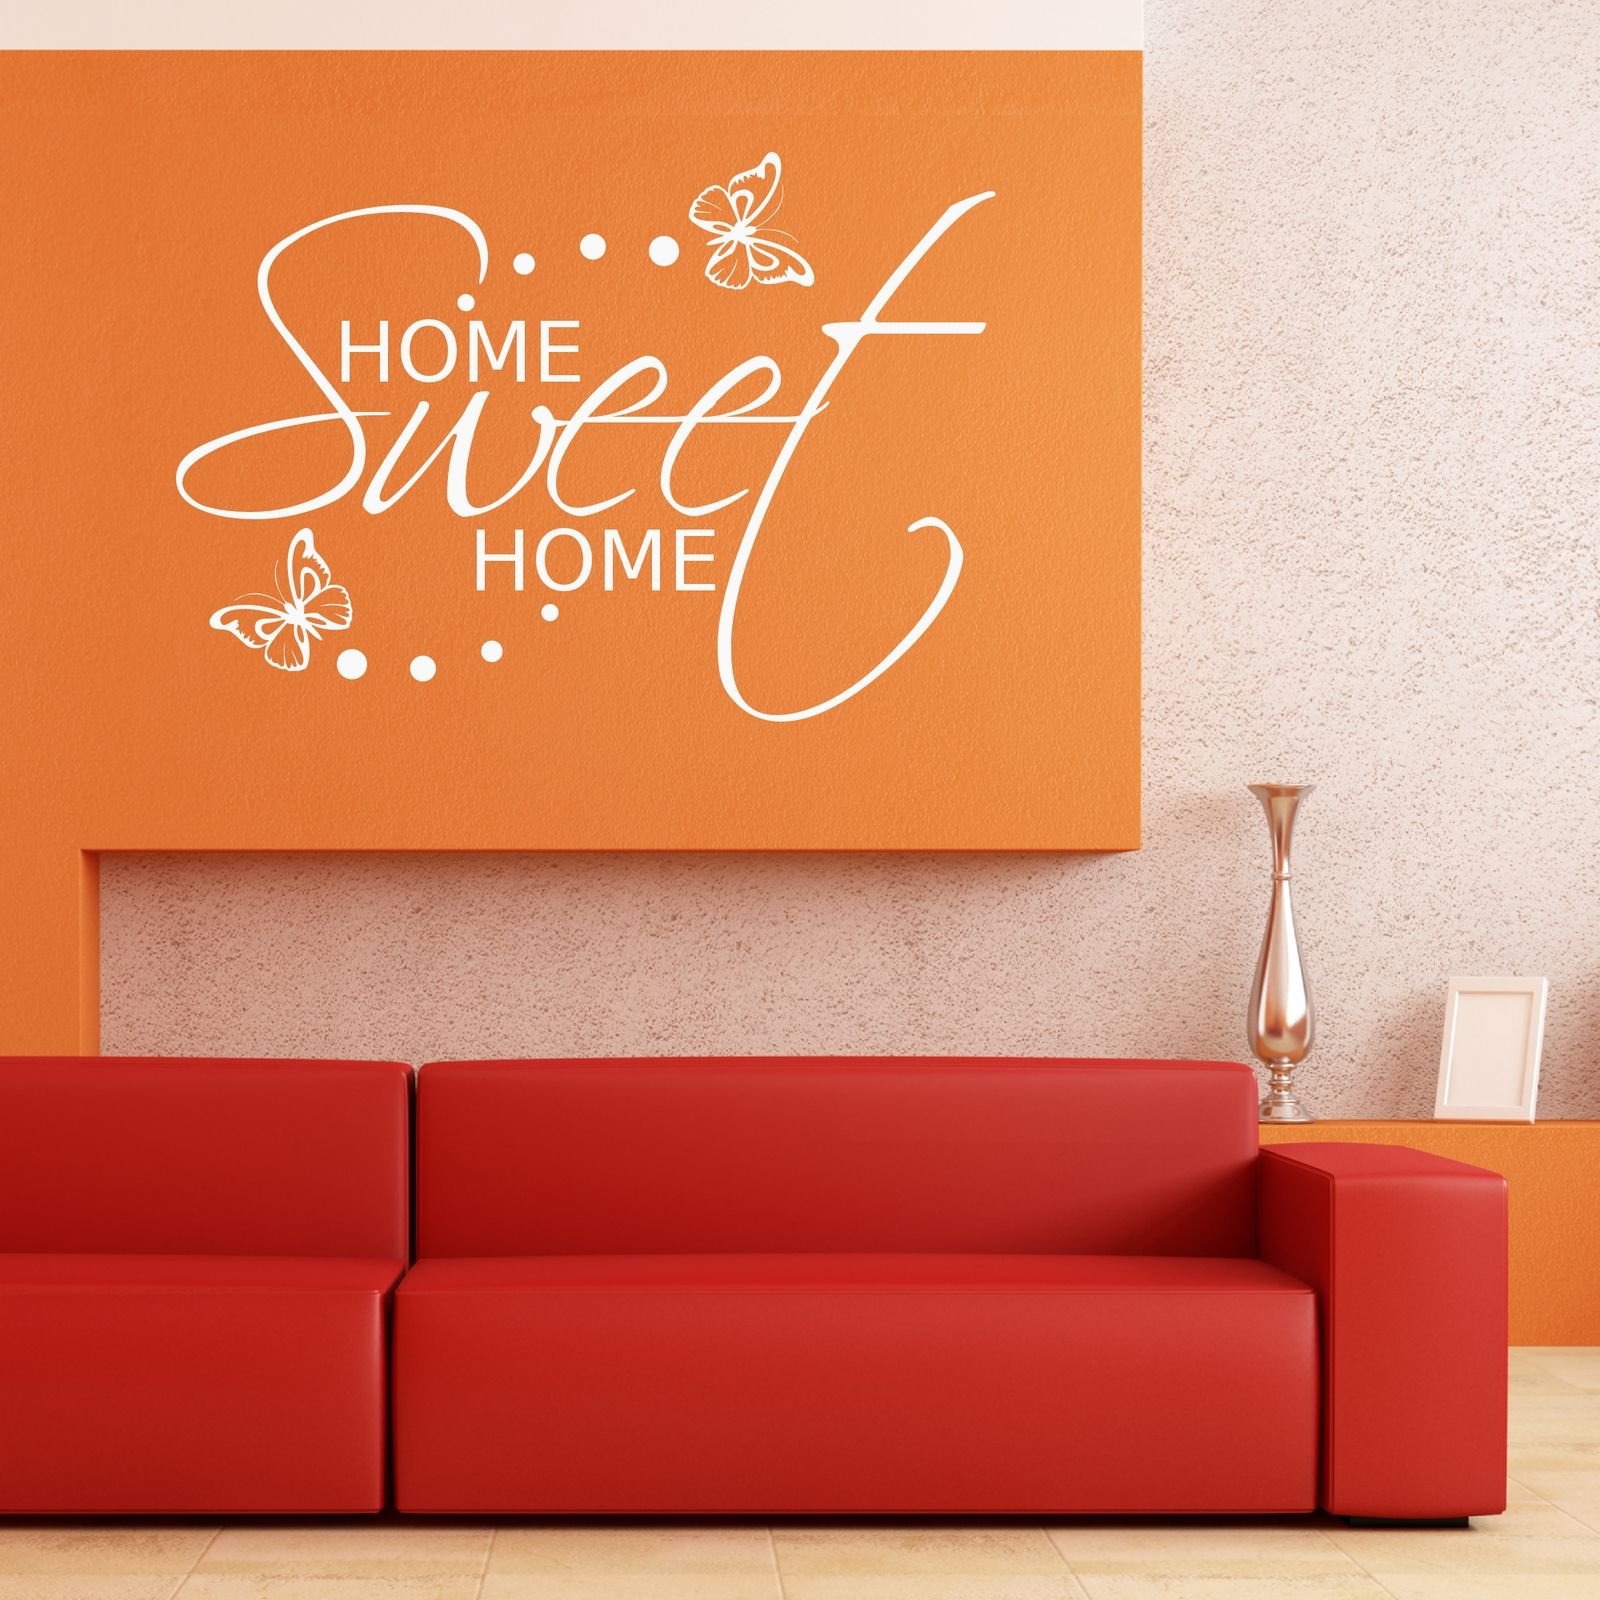 Home sweet home wall sticker art room gift decal mural Home sweet home wall decor